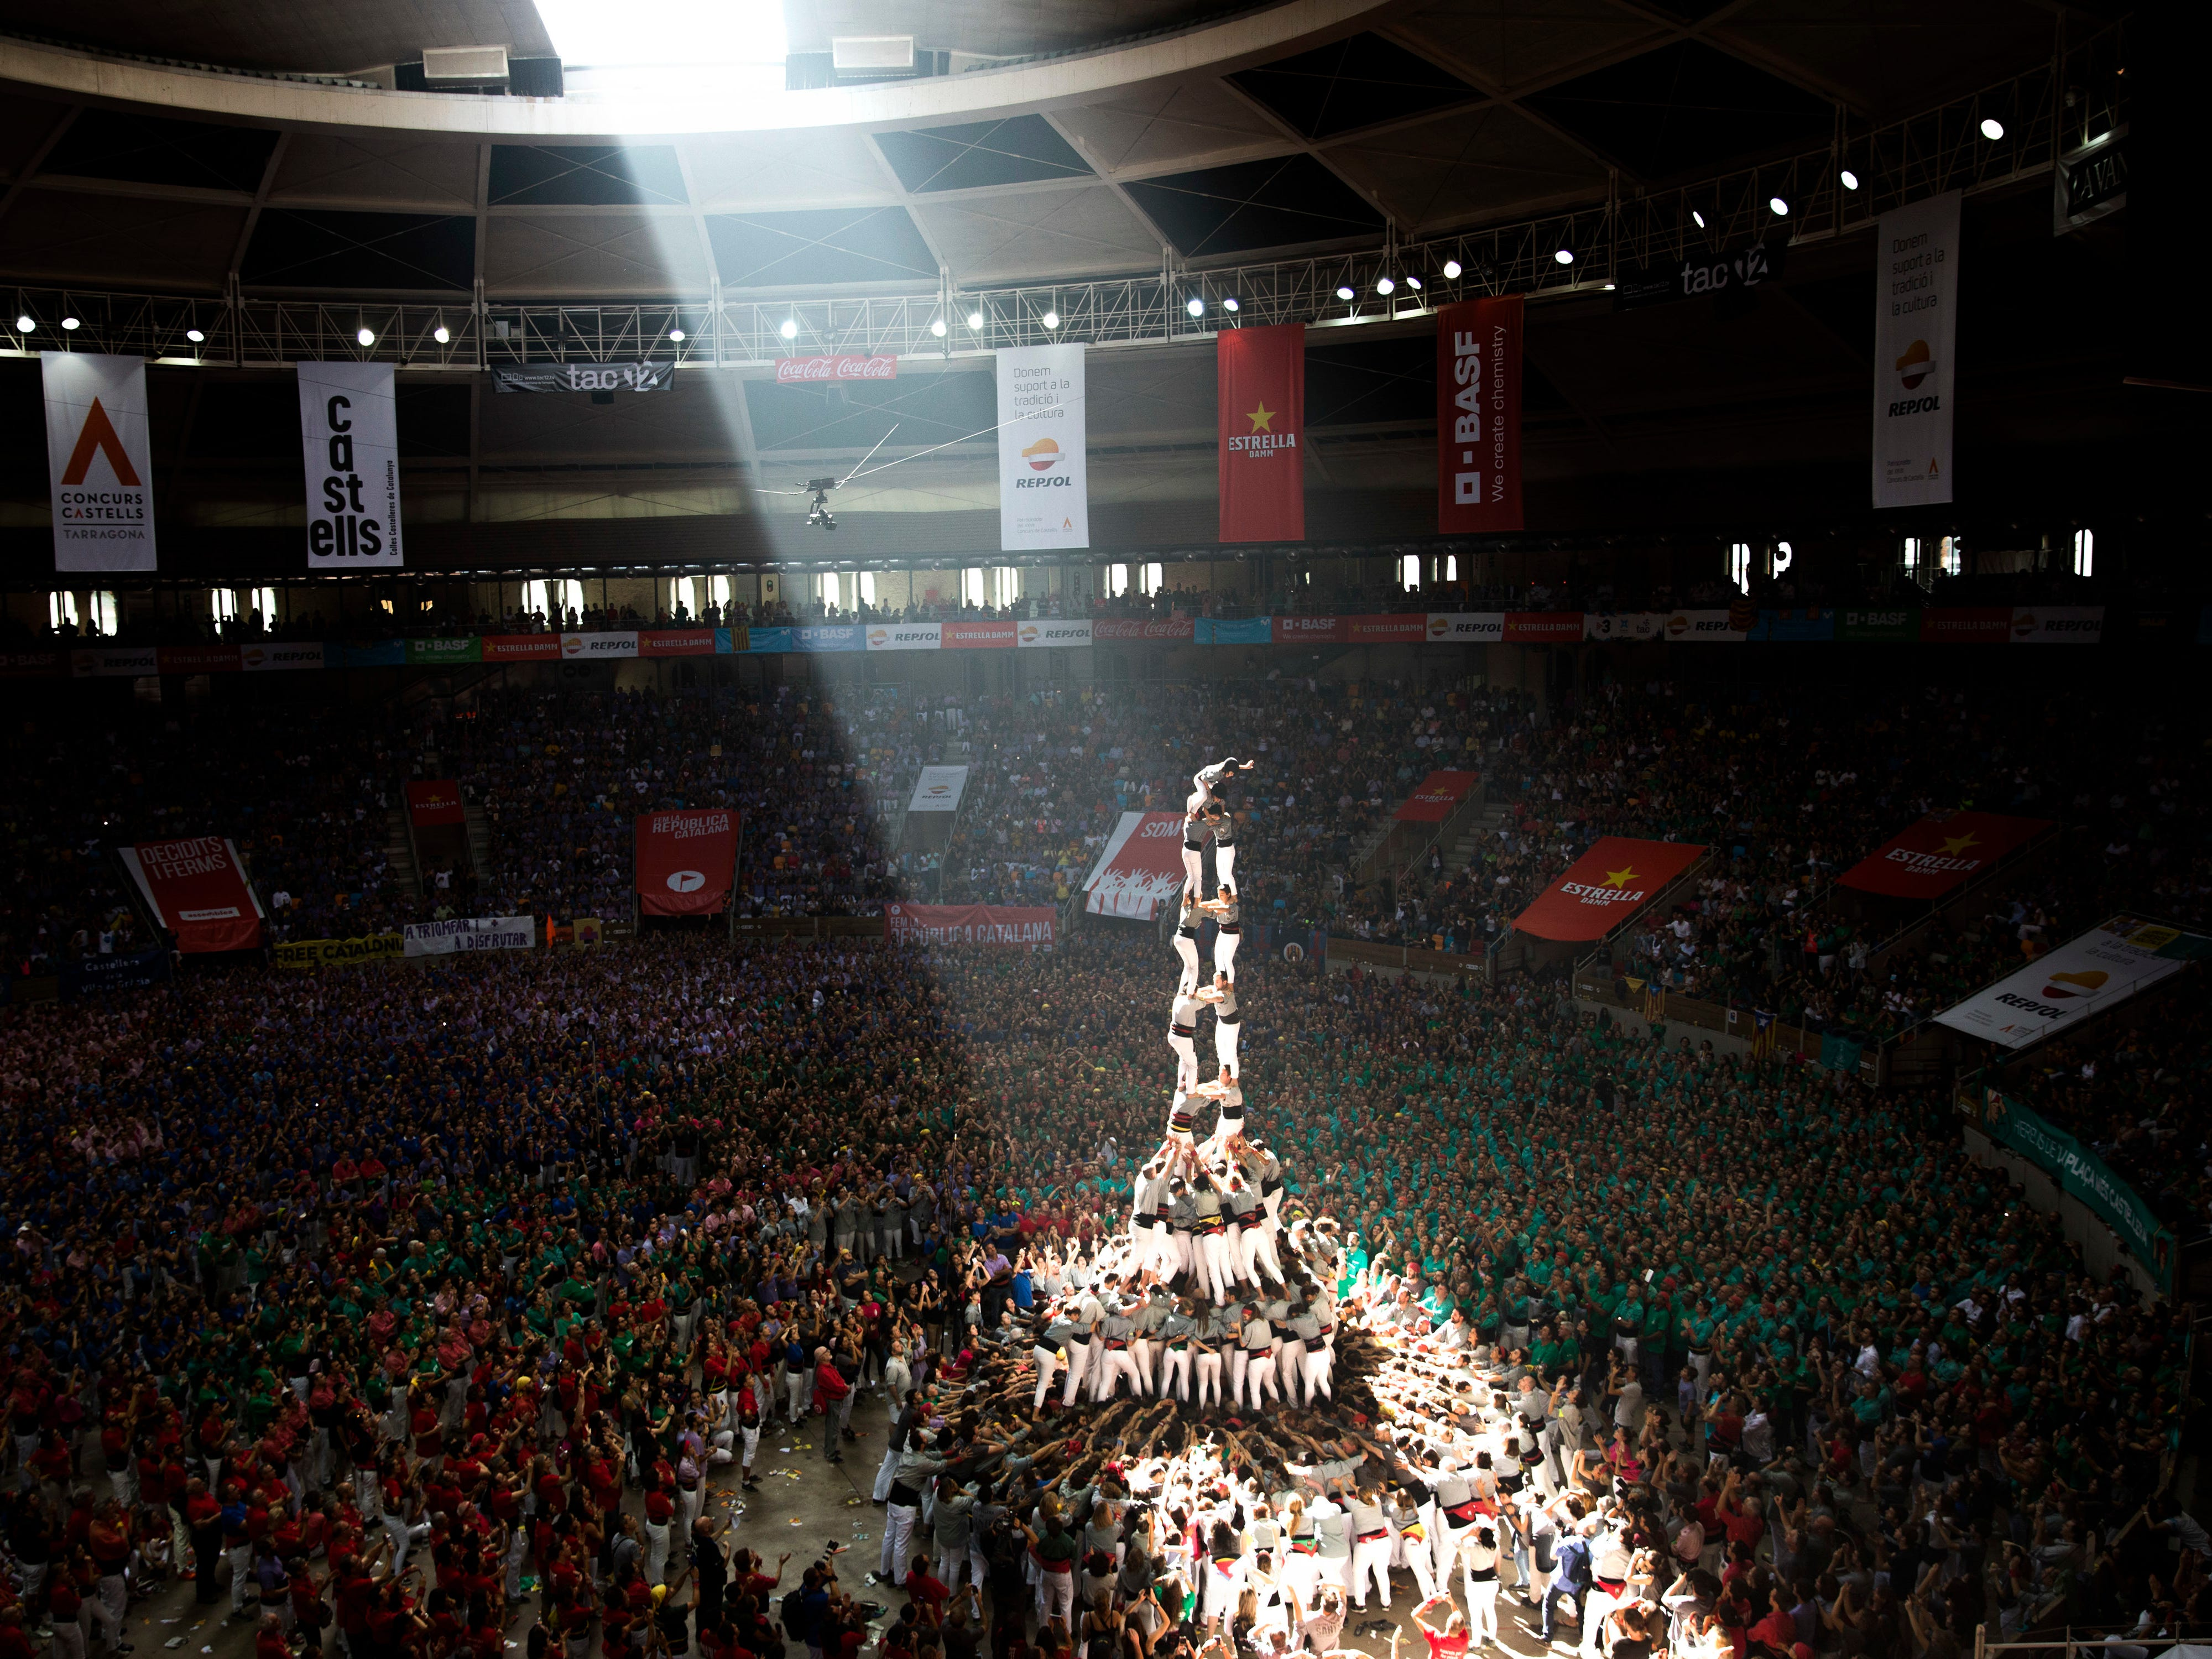 """Members of """"Castellers de Sants"""" complete their human tower during the 27th Human Tower Competition in Tarragona, Spain, Sunday, Oct. 7, 2018. The tradition of building human towers or """"castells"""" dates back to the 18th century and takes place during festivals in Catalonia, where """"colles"""" or teams compete to build the tallest and most complicated towers. """"Castells"""" were declared by UNESCO one of the Masterpieces of the Oral and Intangible Heritage of Humanity."""